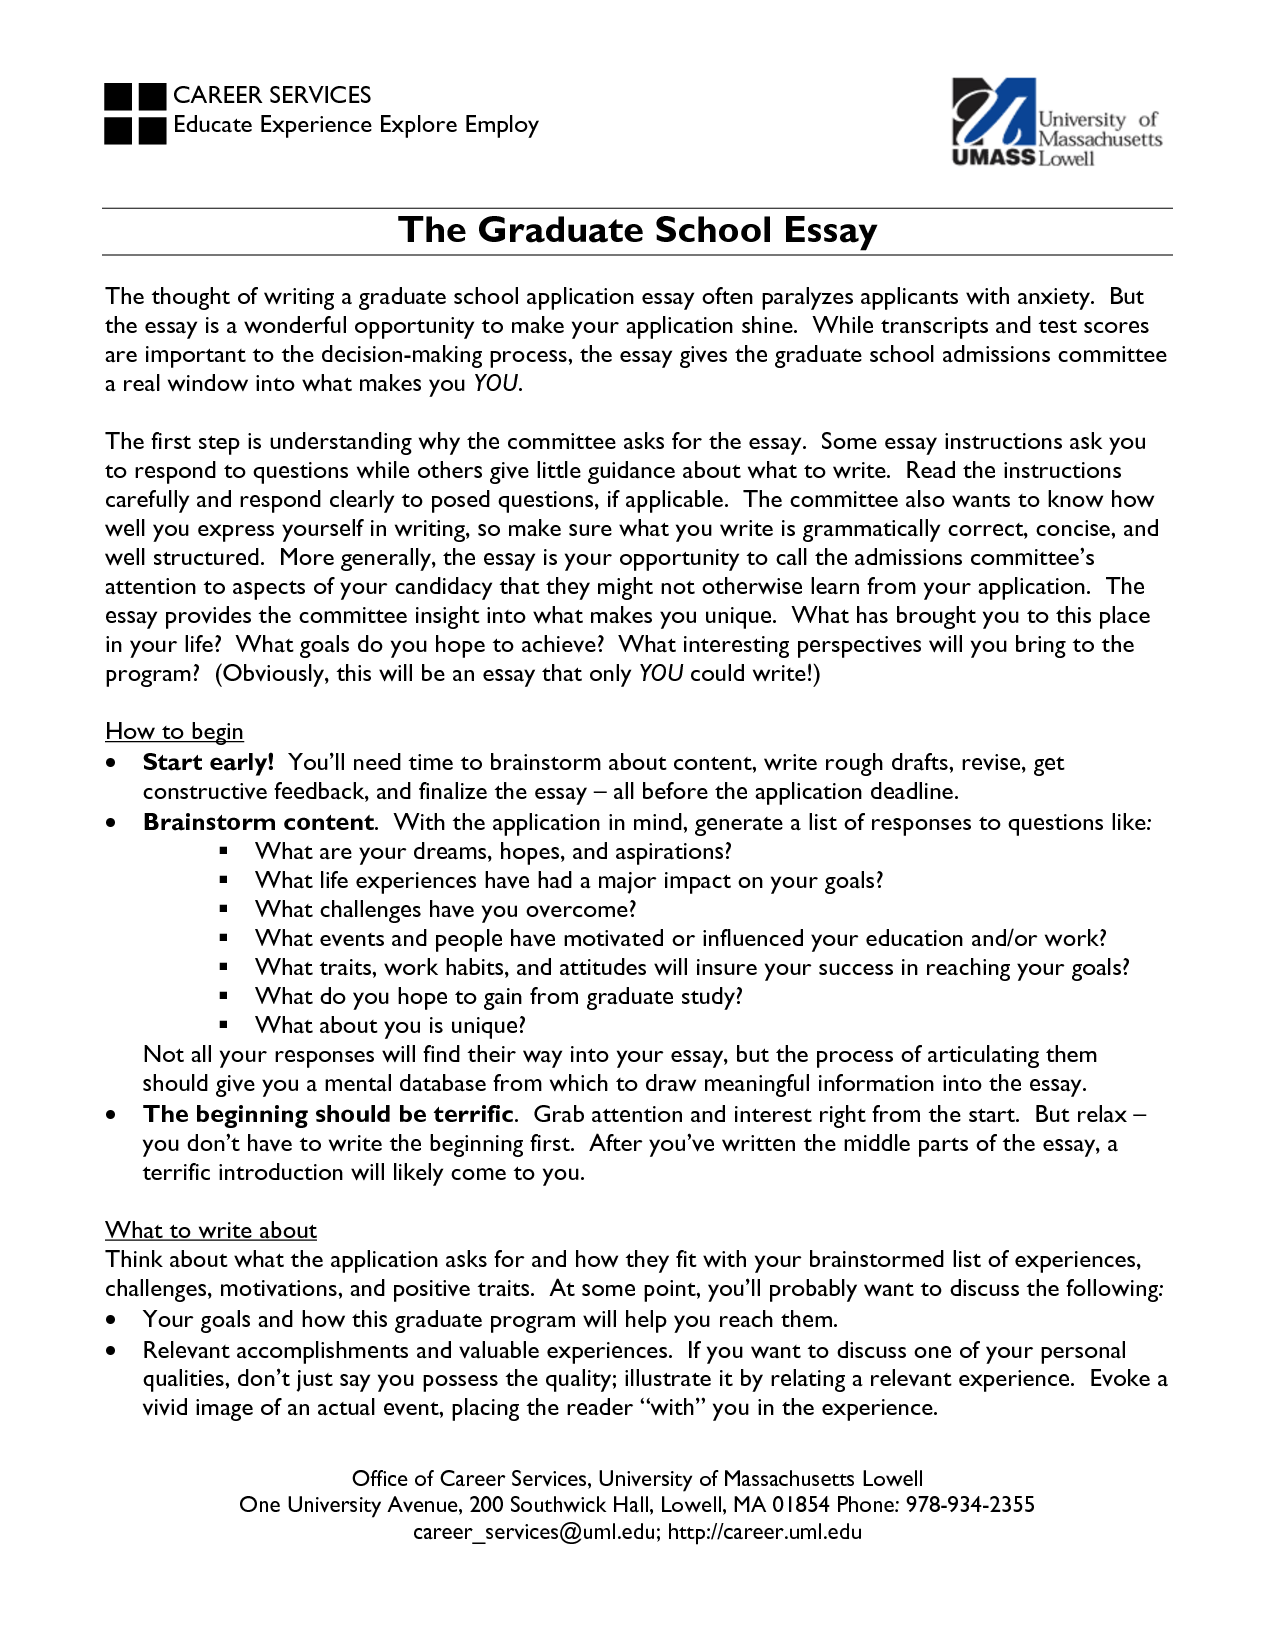 Writing admissions essay graduate school education